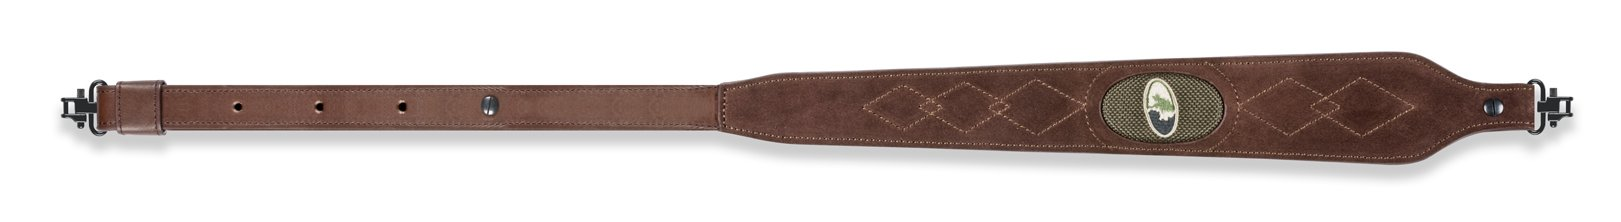 Mossy Oak Mason Creek Leather Sling